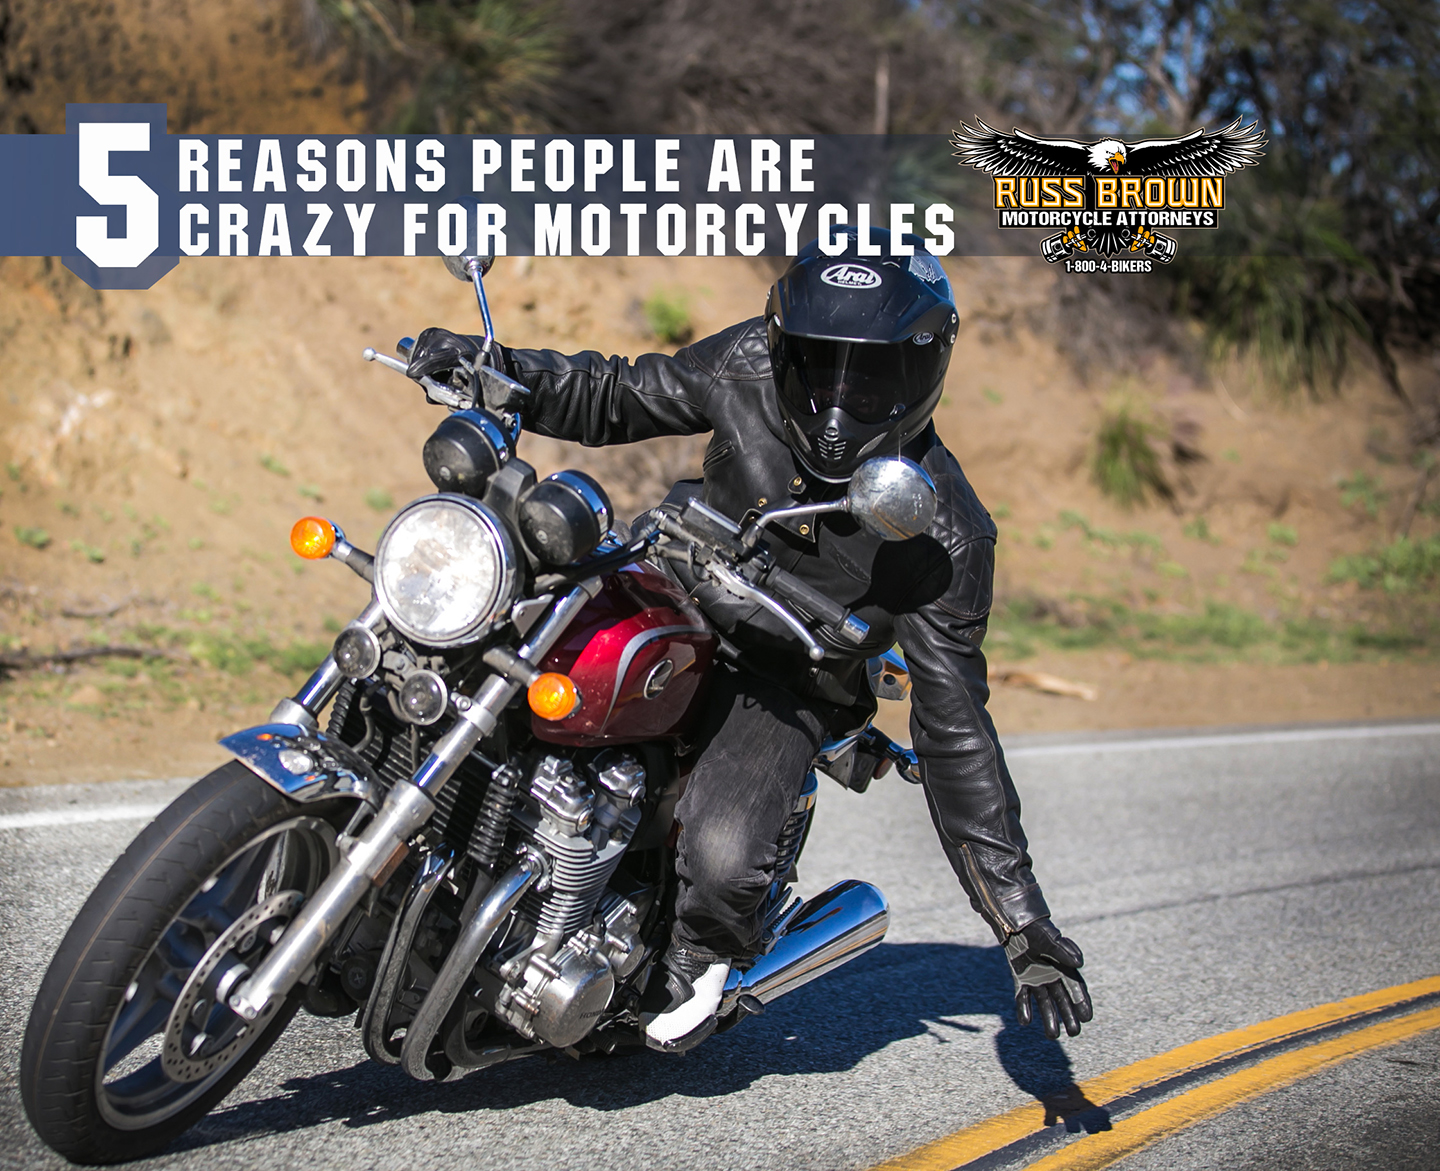 Five Reasons People Are Crazy For Motorcycles